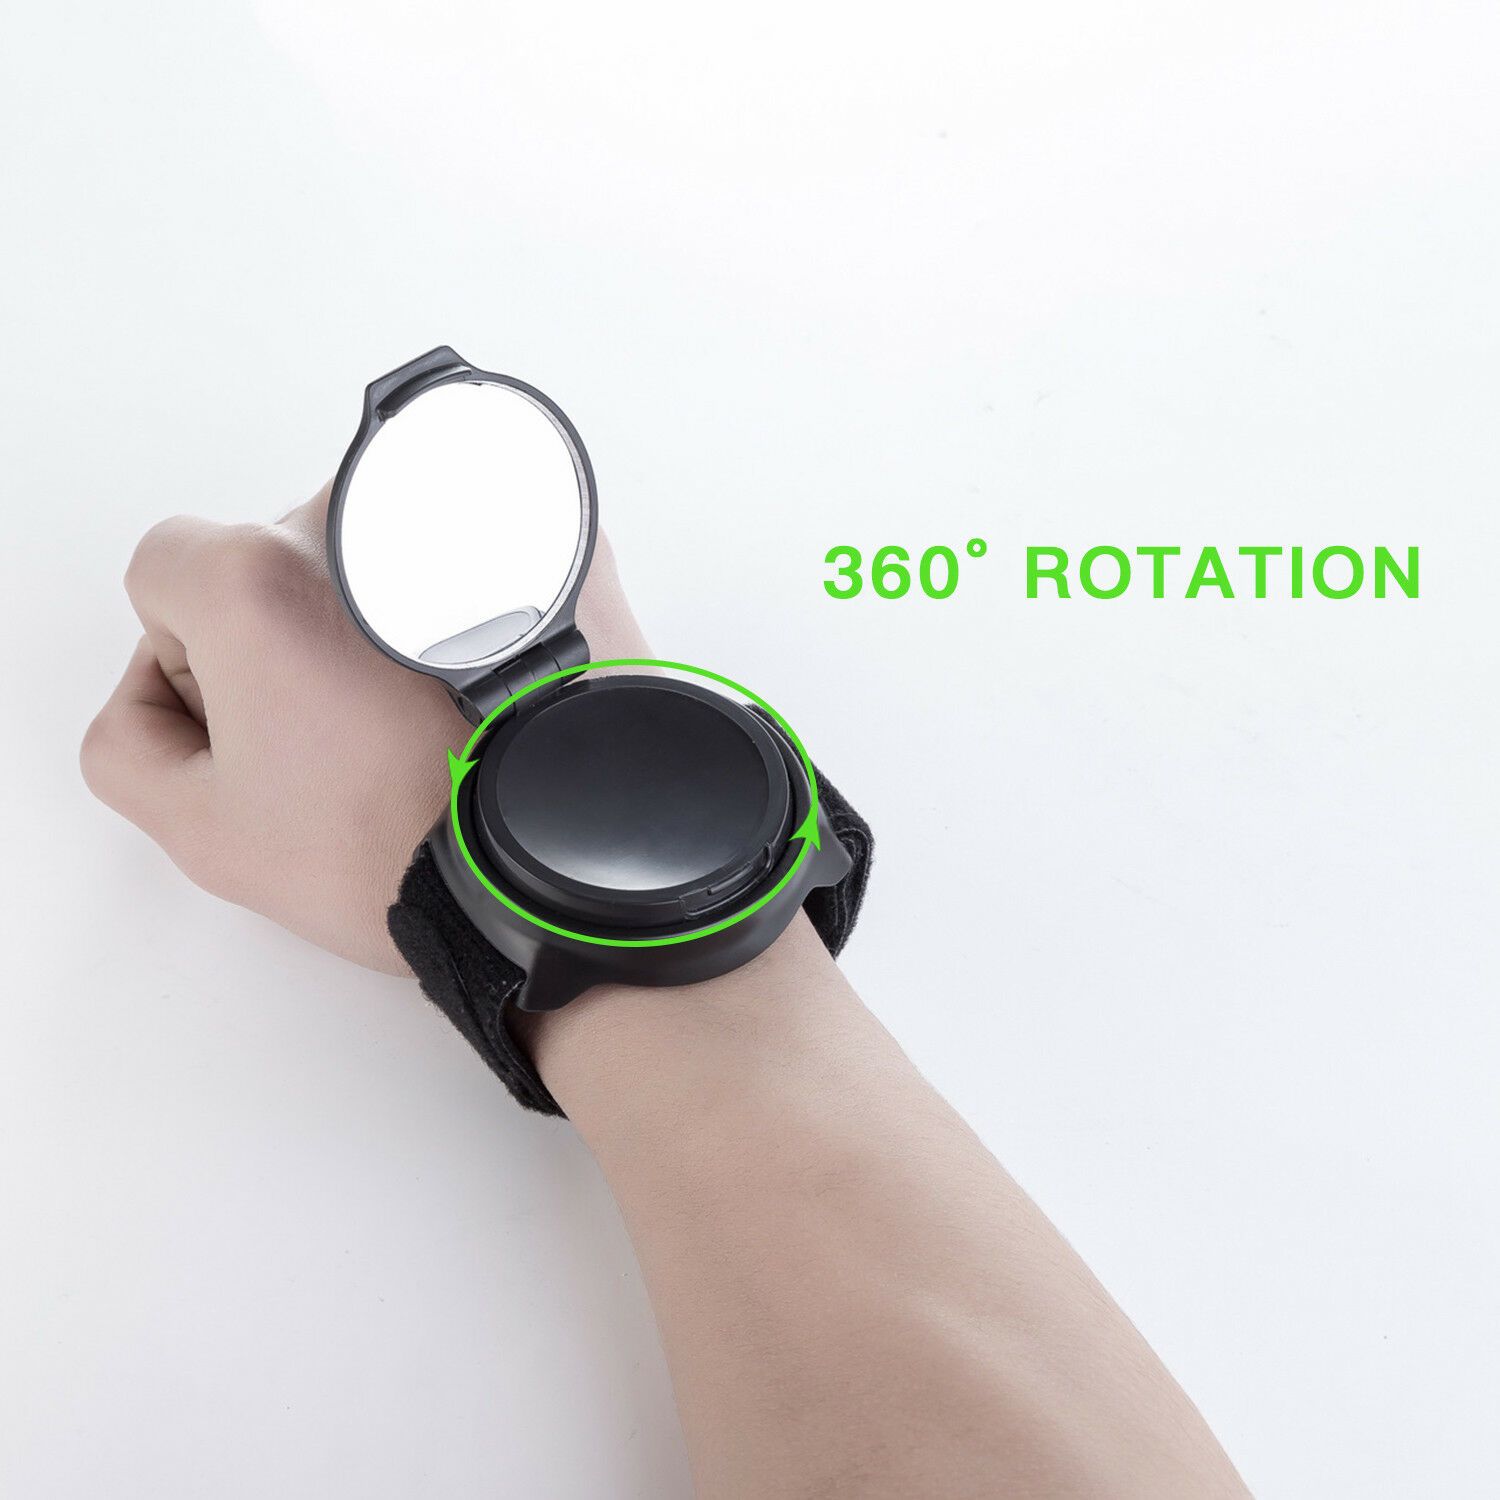 Benrise Wrist Strap 360 Rotating Bicycle Rearview Mirror Wristband Safety Rearview Mirror for Cyclists Mountain Road Bike Riding Portable Bicycle Accessories